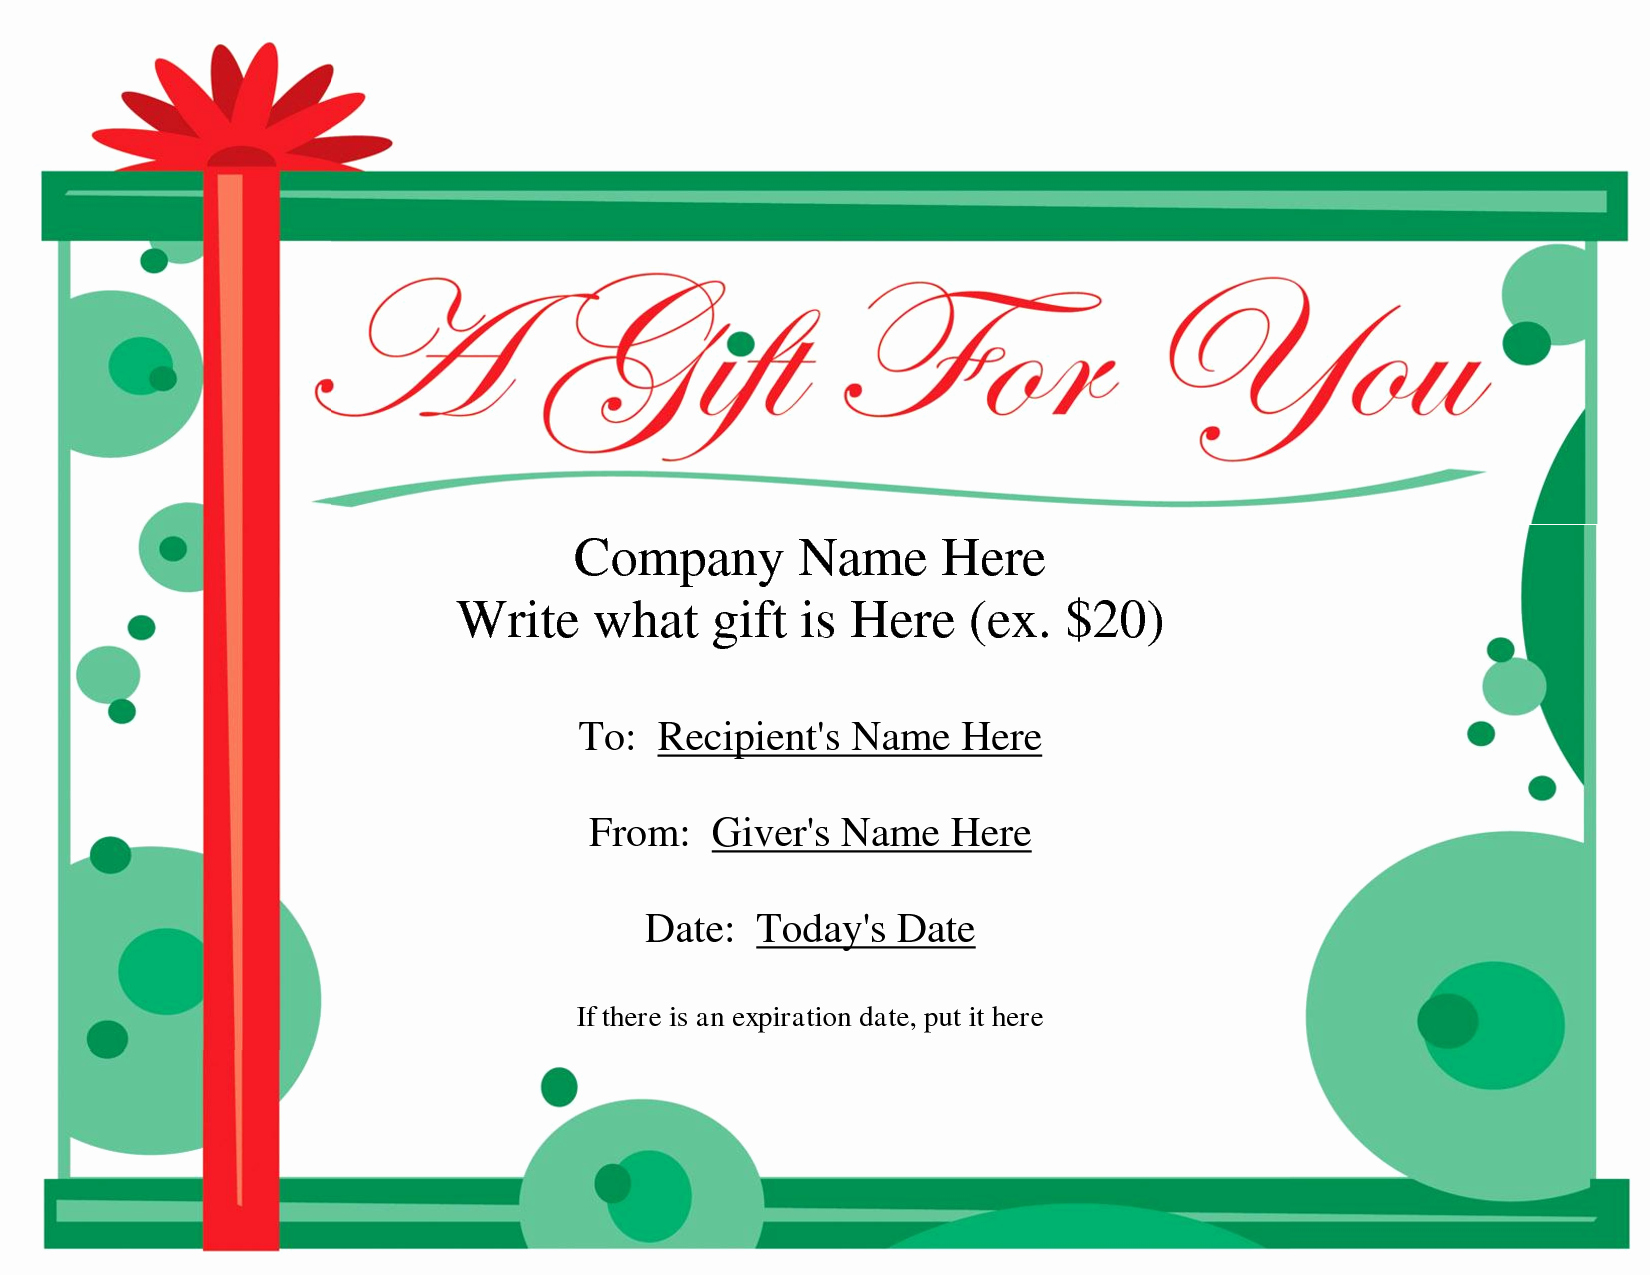 Powerpoint Gift Certificate Template Lovely What It is A Gift Certificate Template